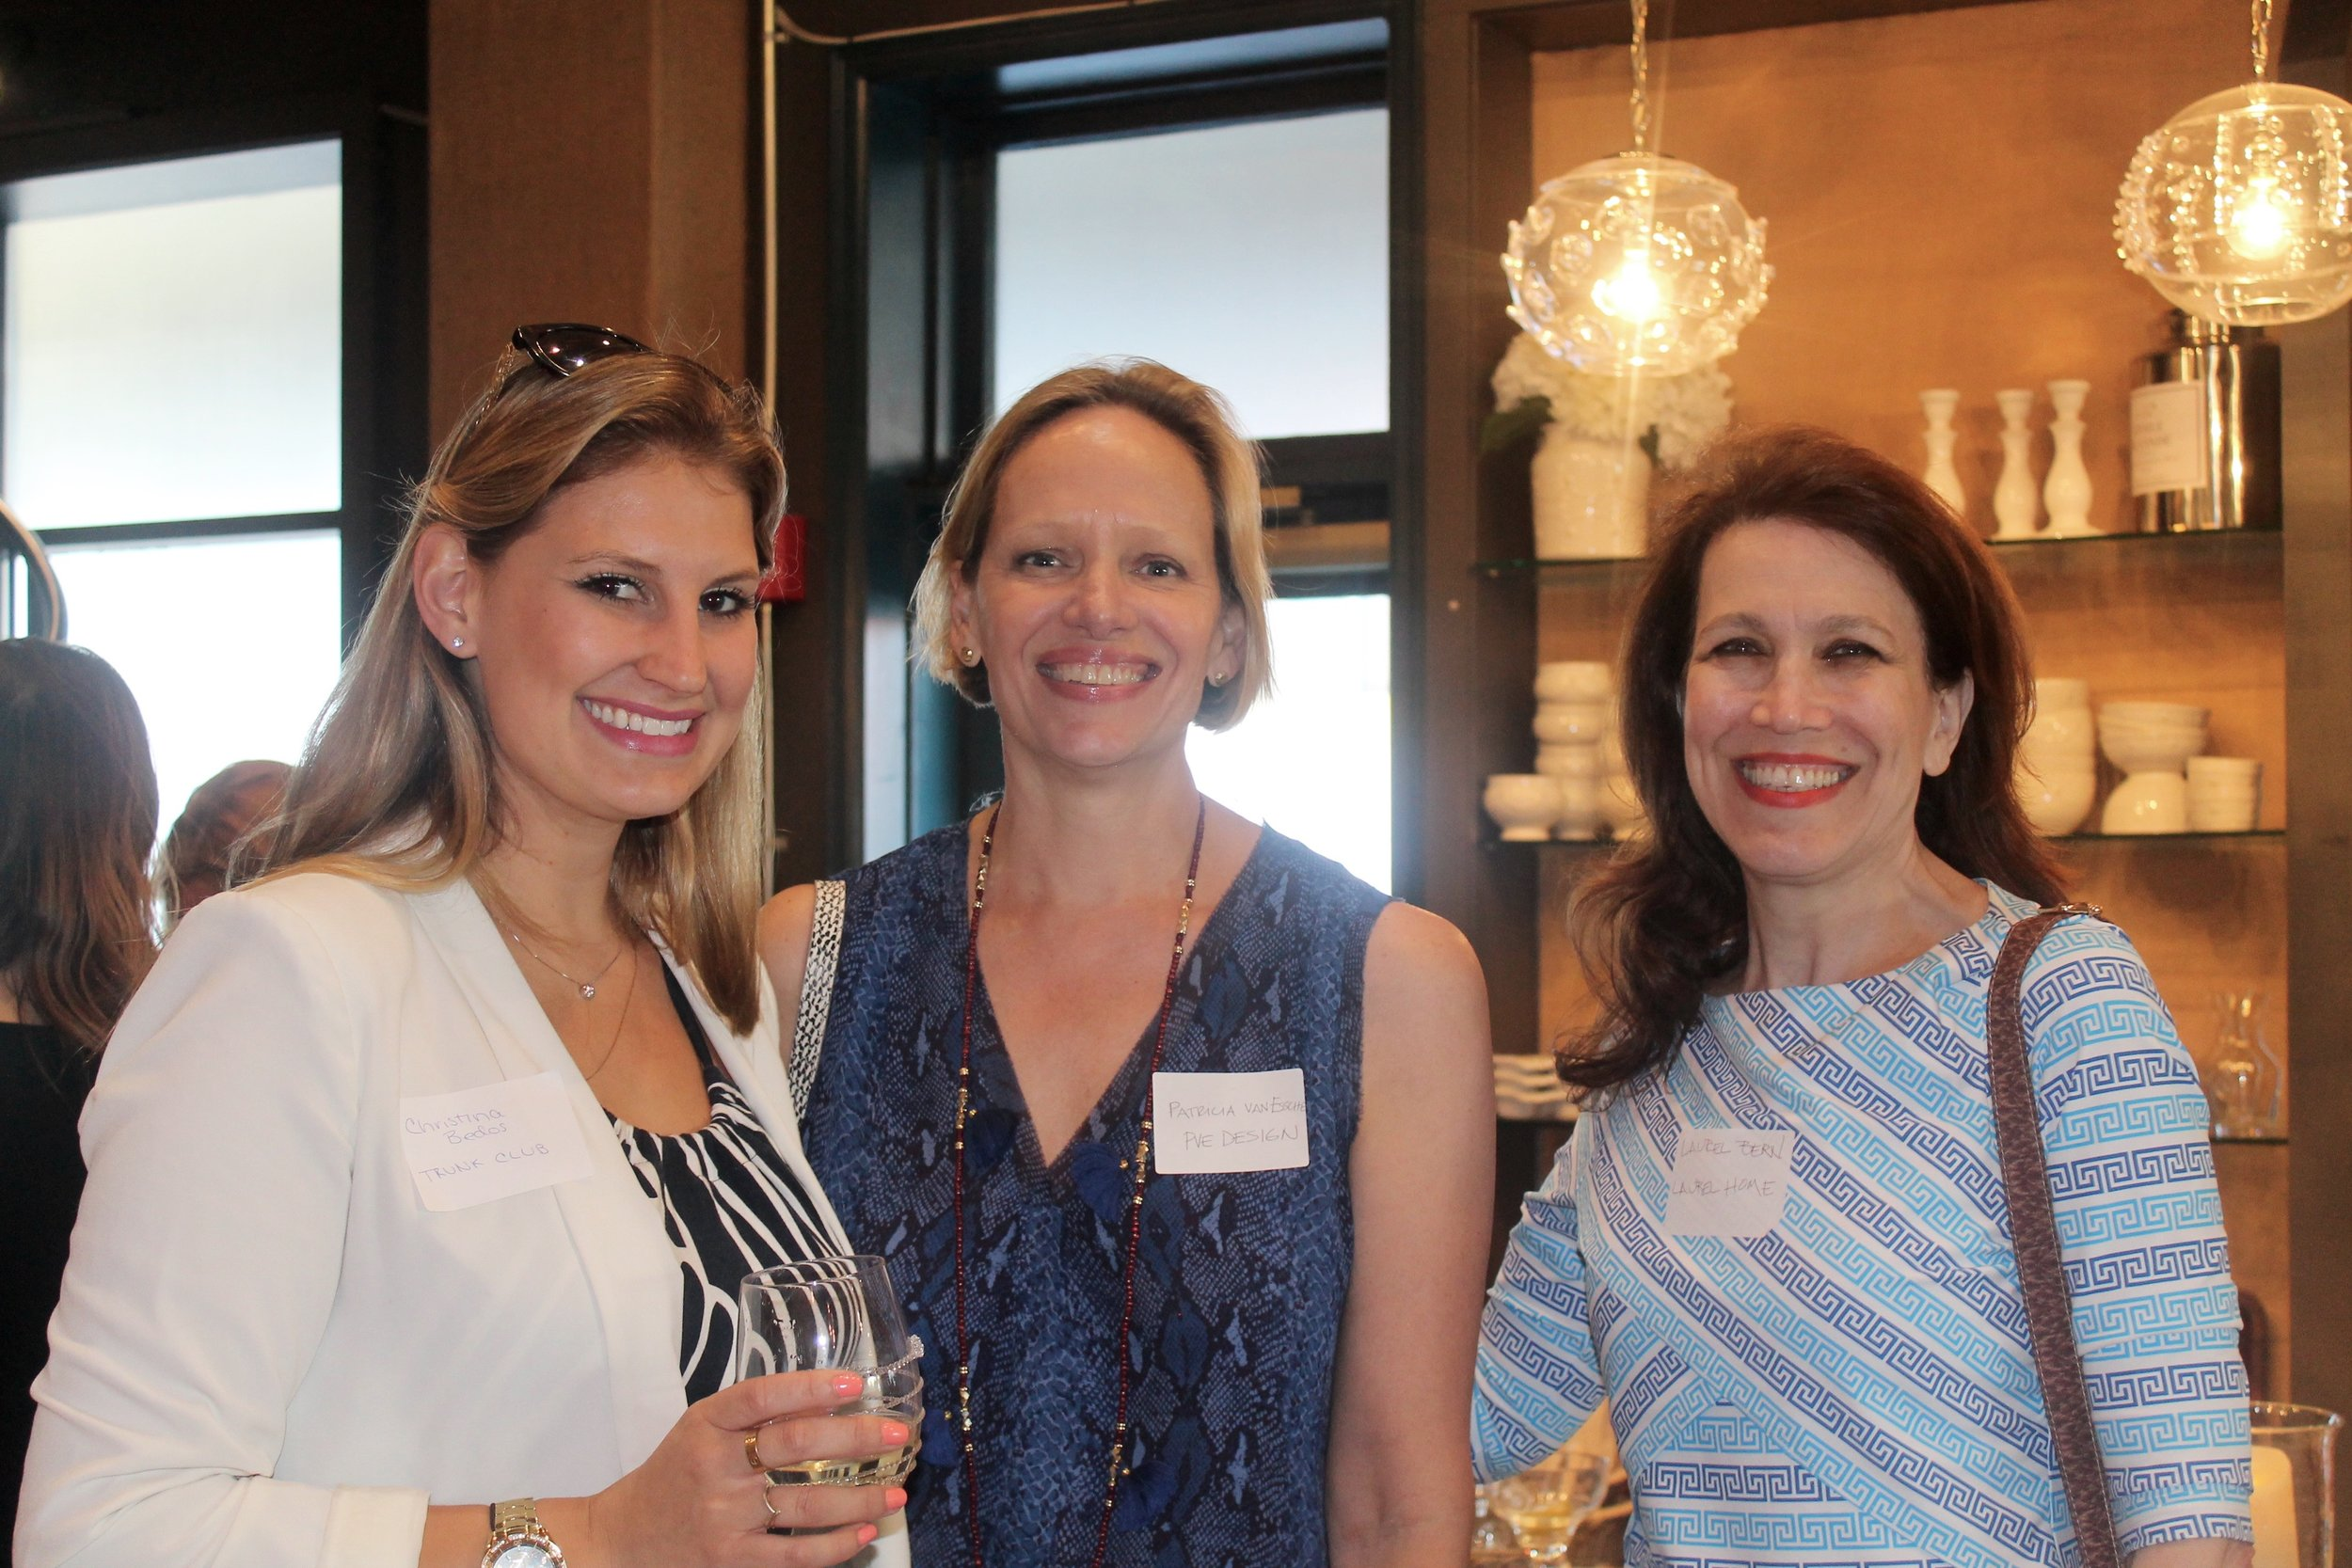 luxe blogger event boost your business with home decor influencers.jpg